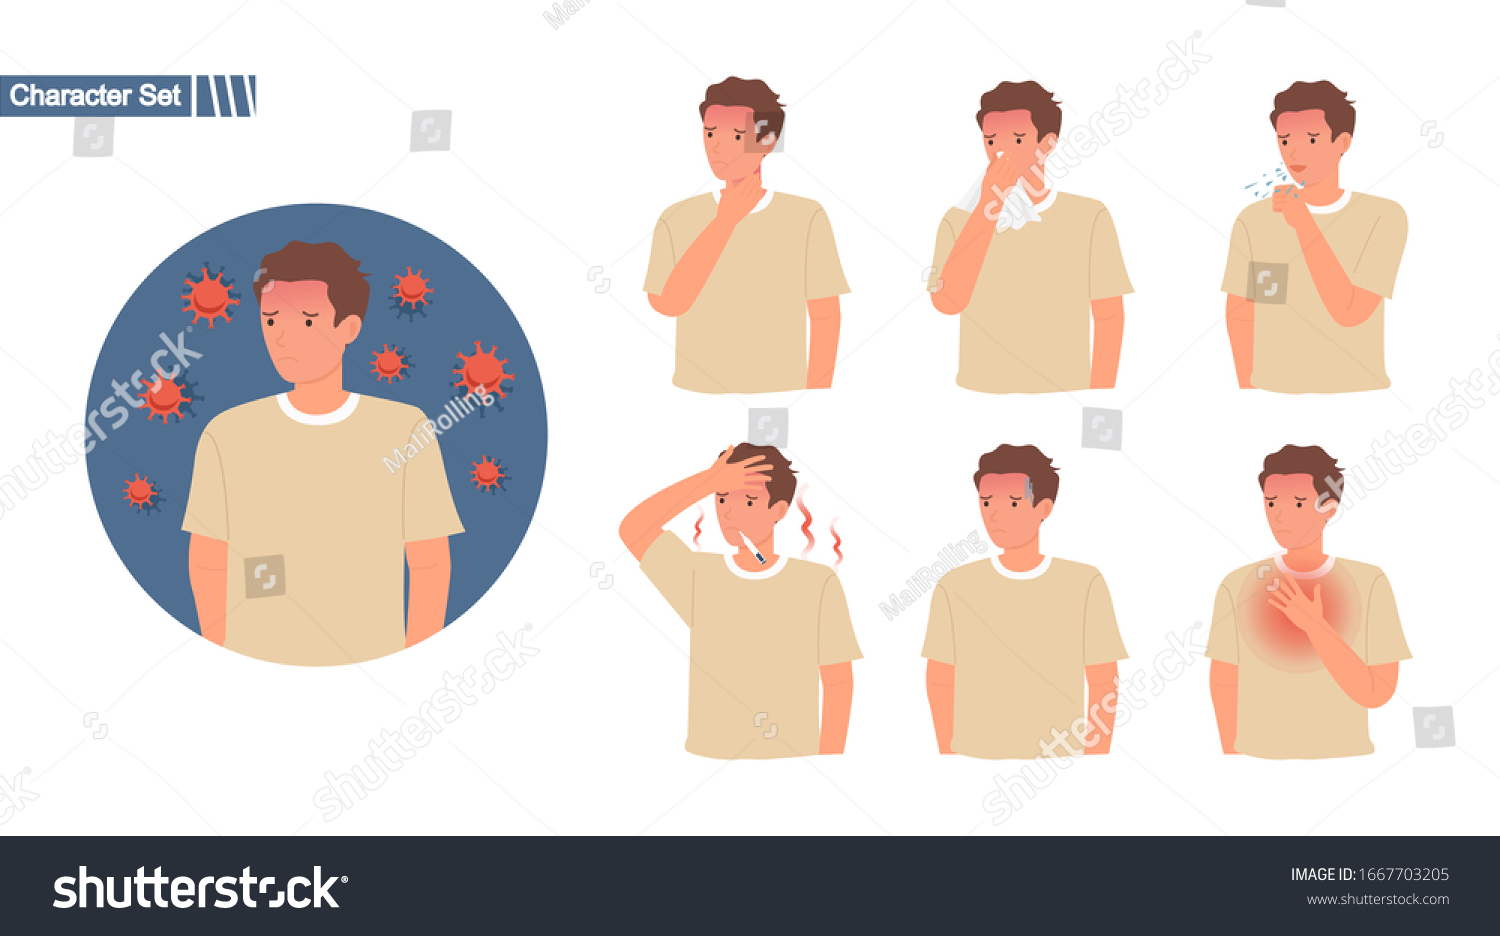 Covid19 Symptom Set Corona Infection Virus Stock Vector Royalty Free 1667703205